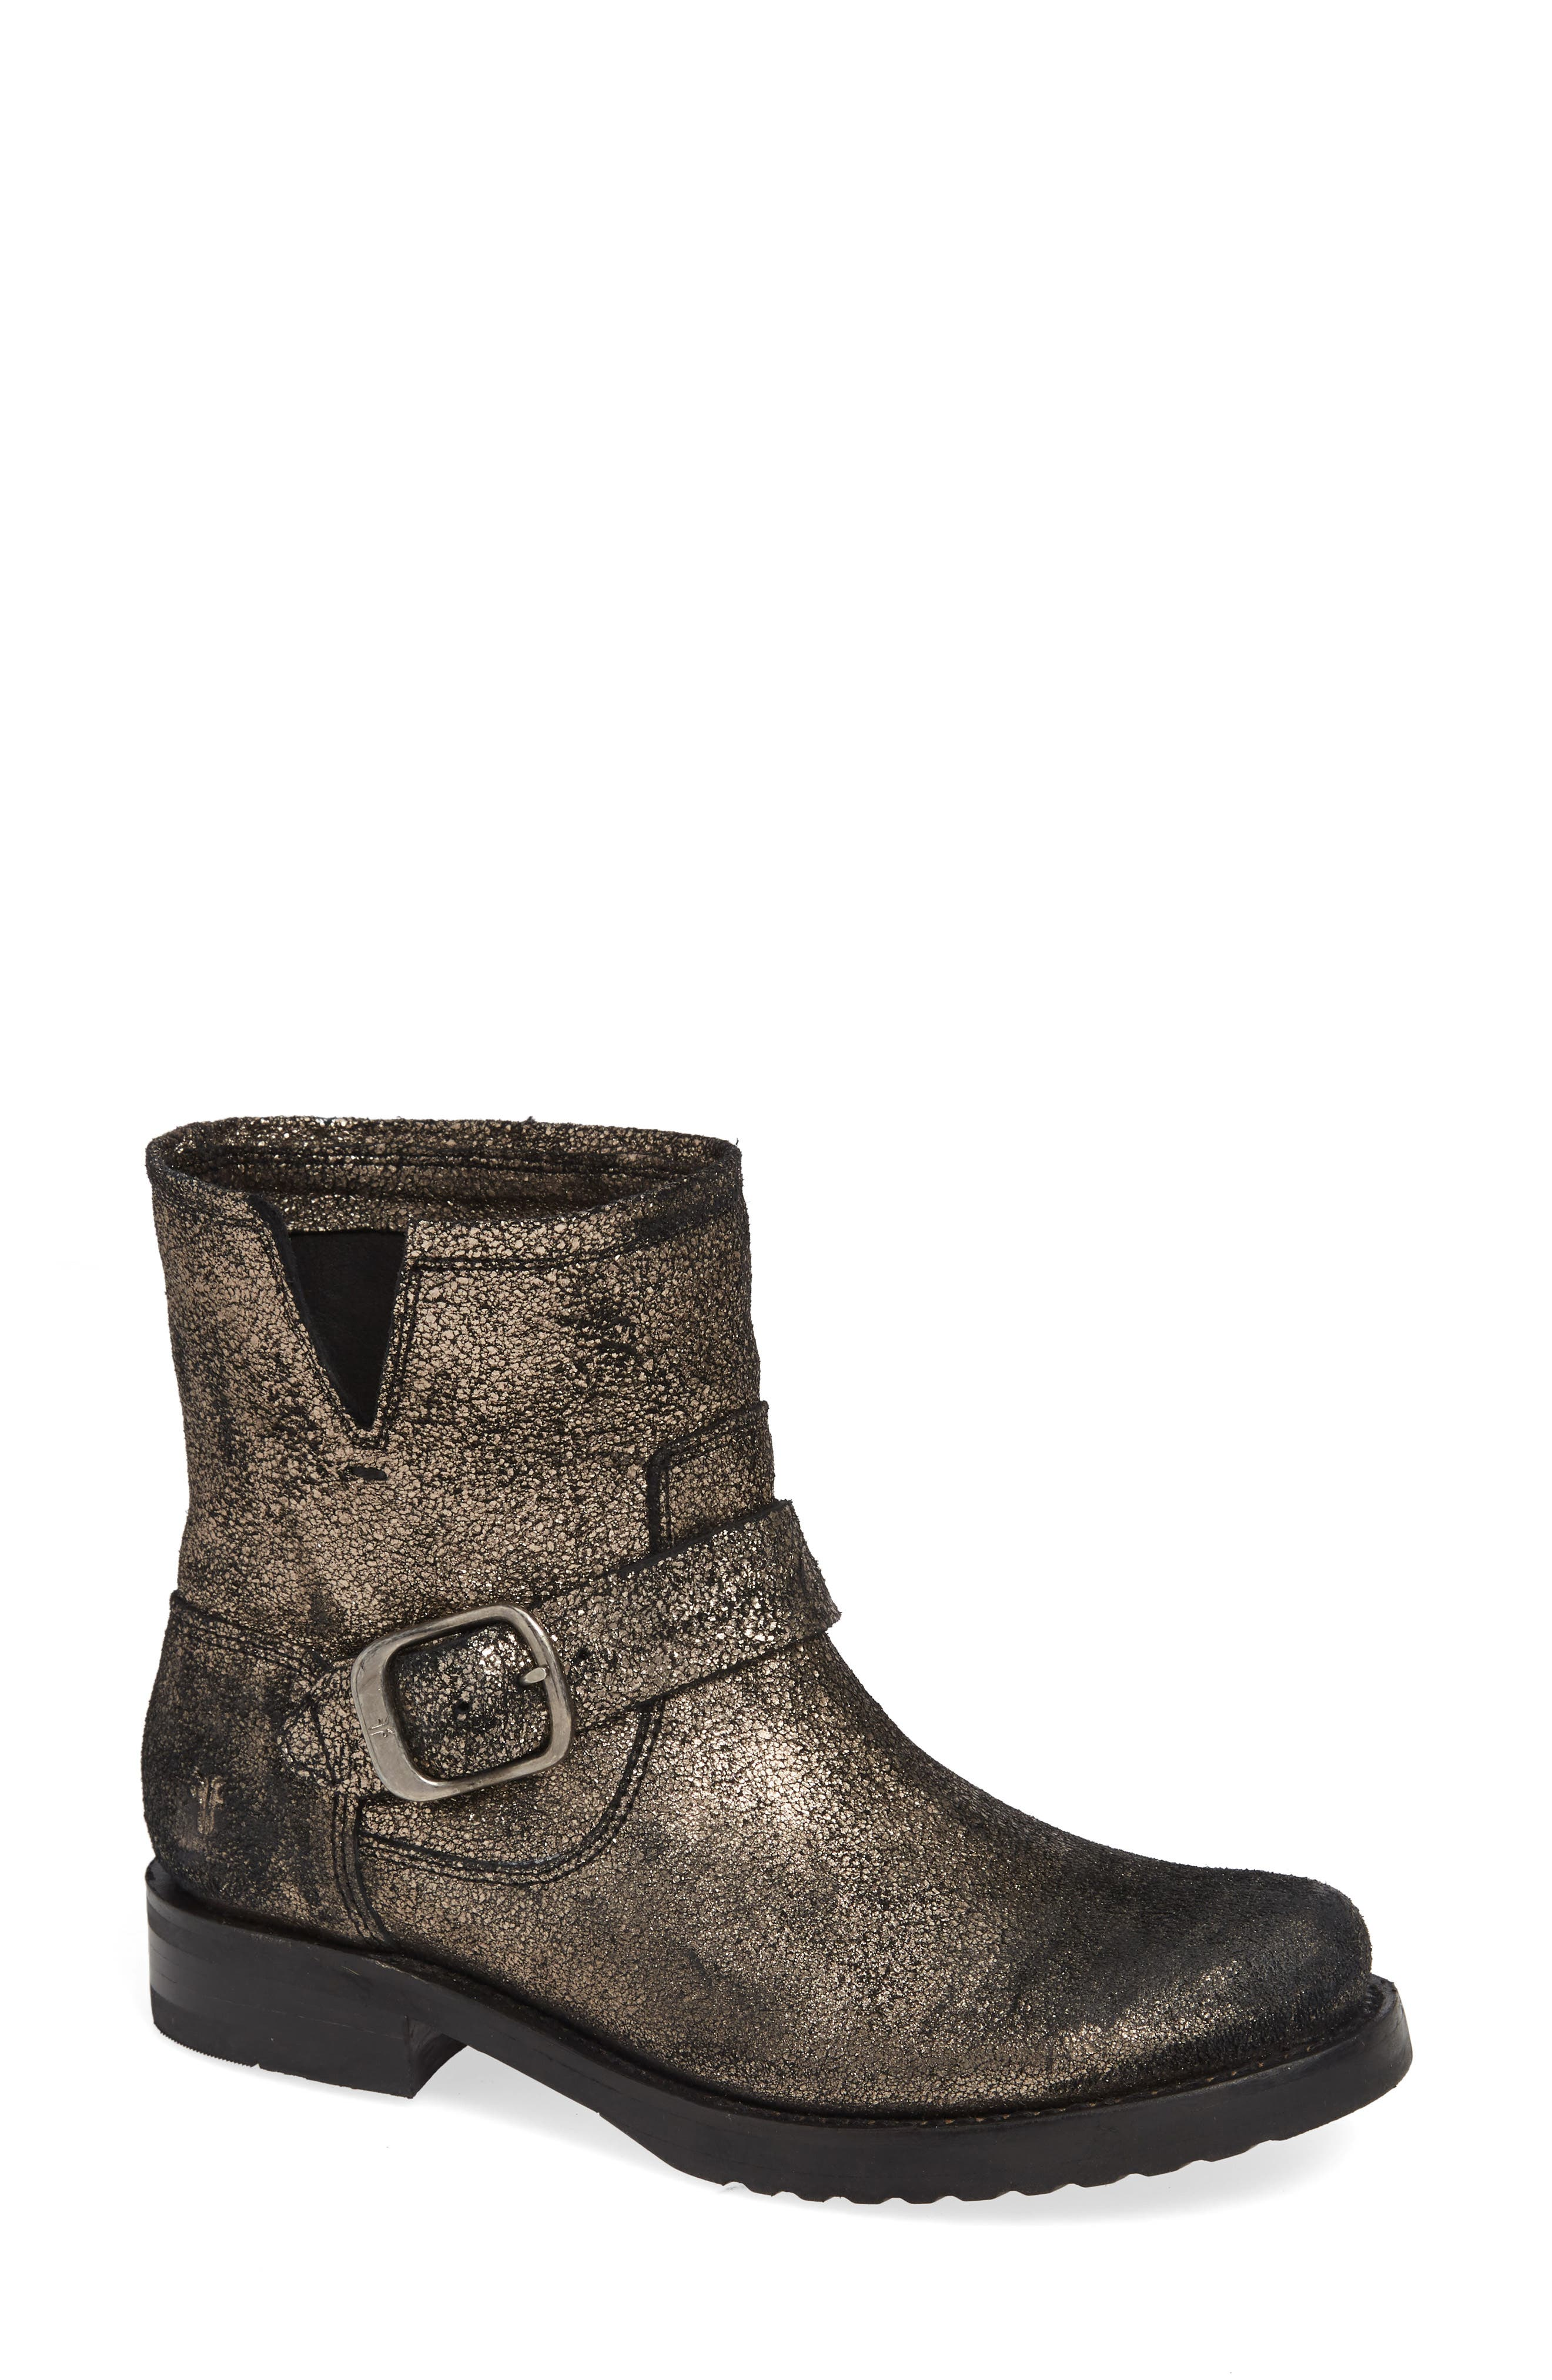 Veronica Bootie,                             Main thumbnail 1, color,                             GOLD LEATHER